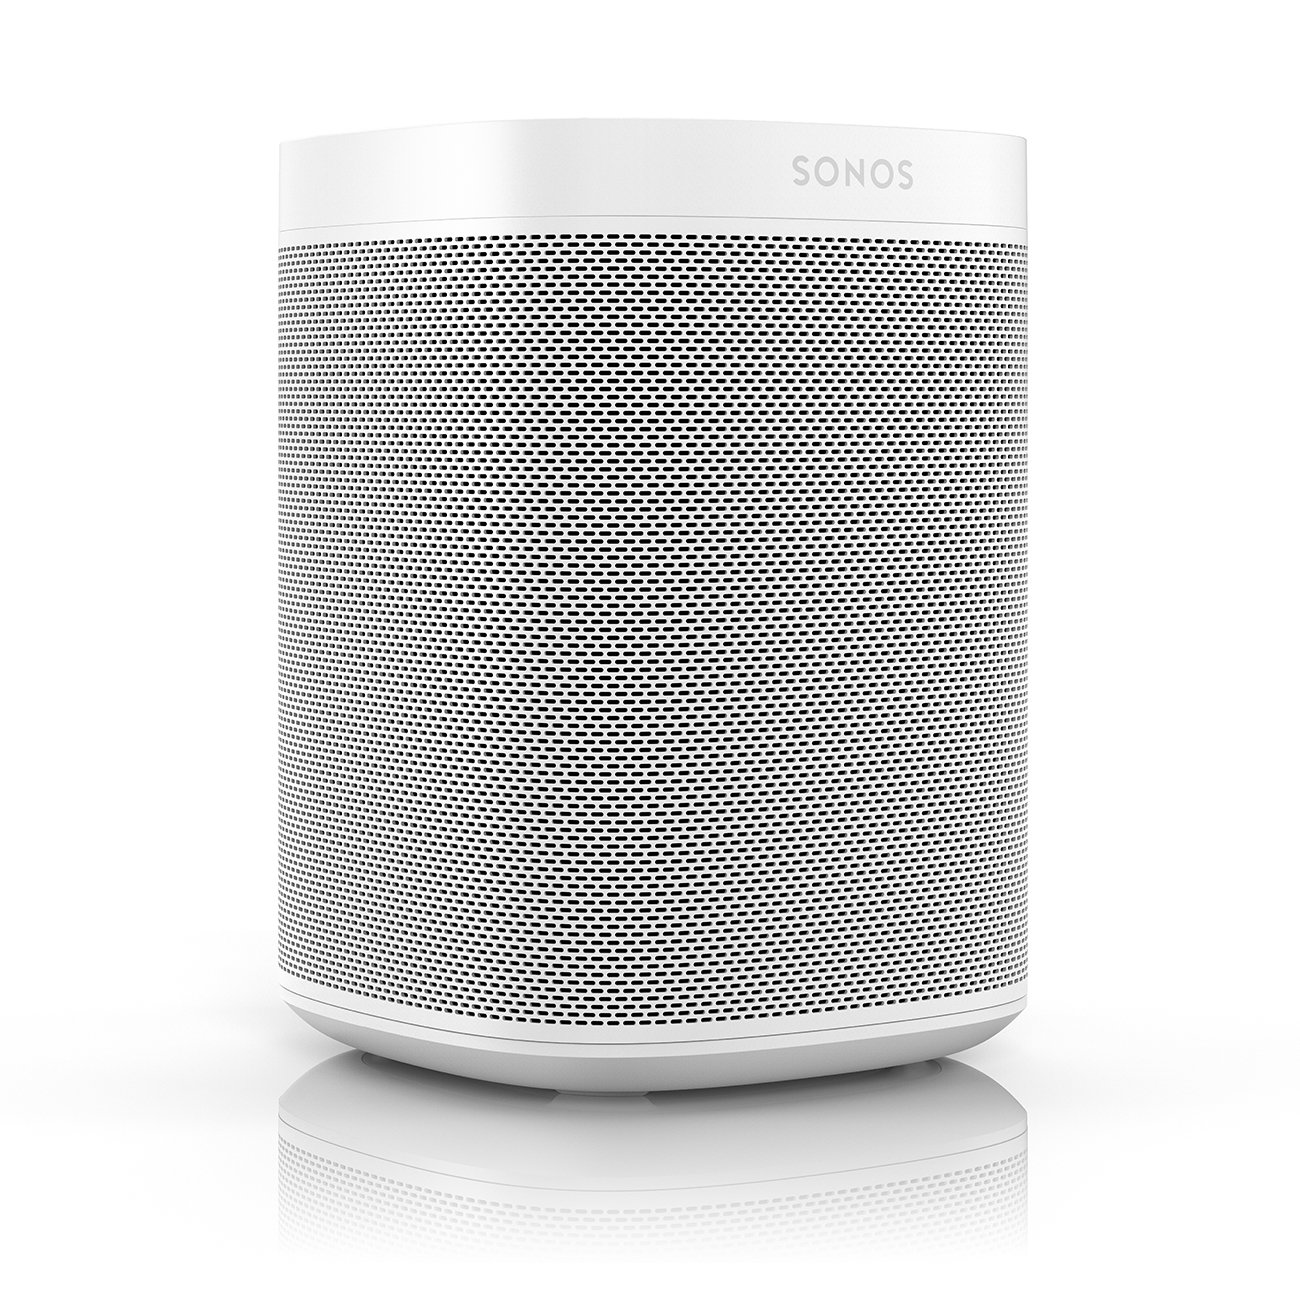 sonos speakers holiday gift guide for him and the home